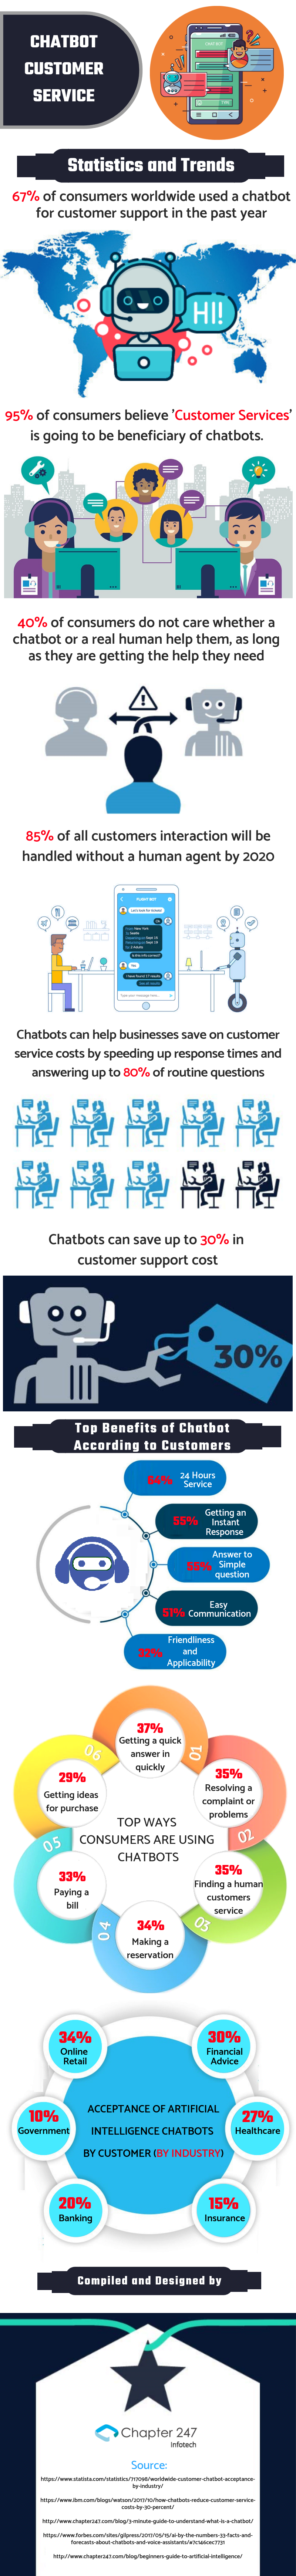 Chatbot Customer Service- Statics and Trends